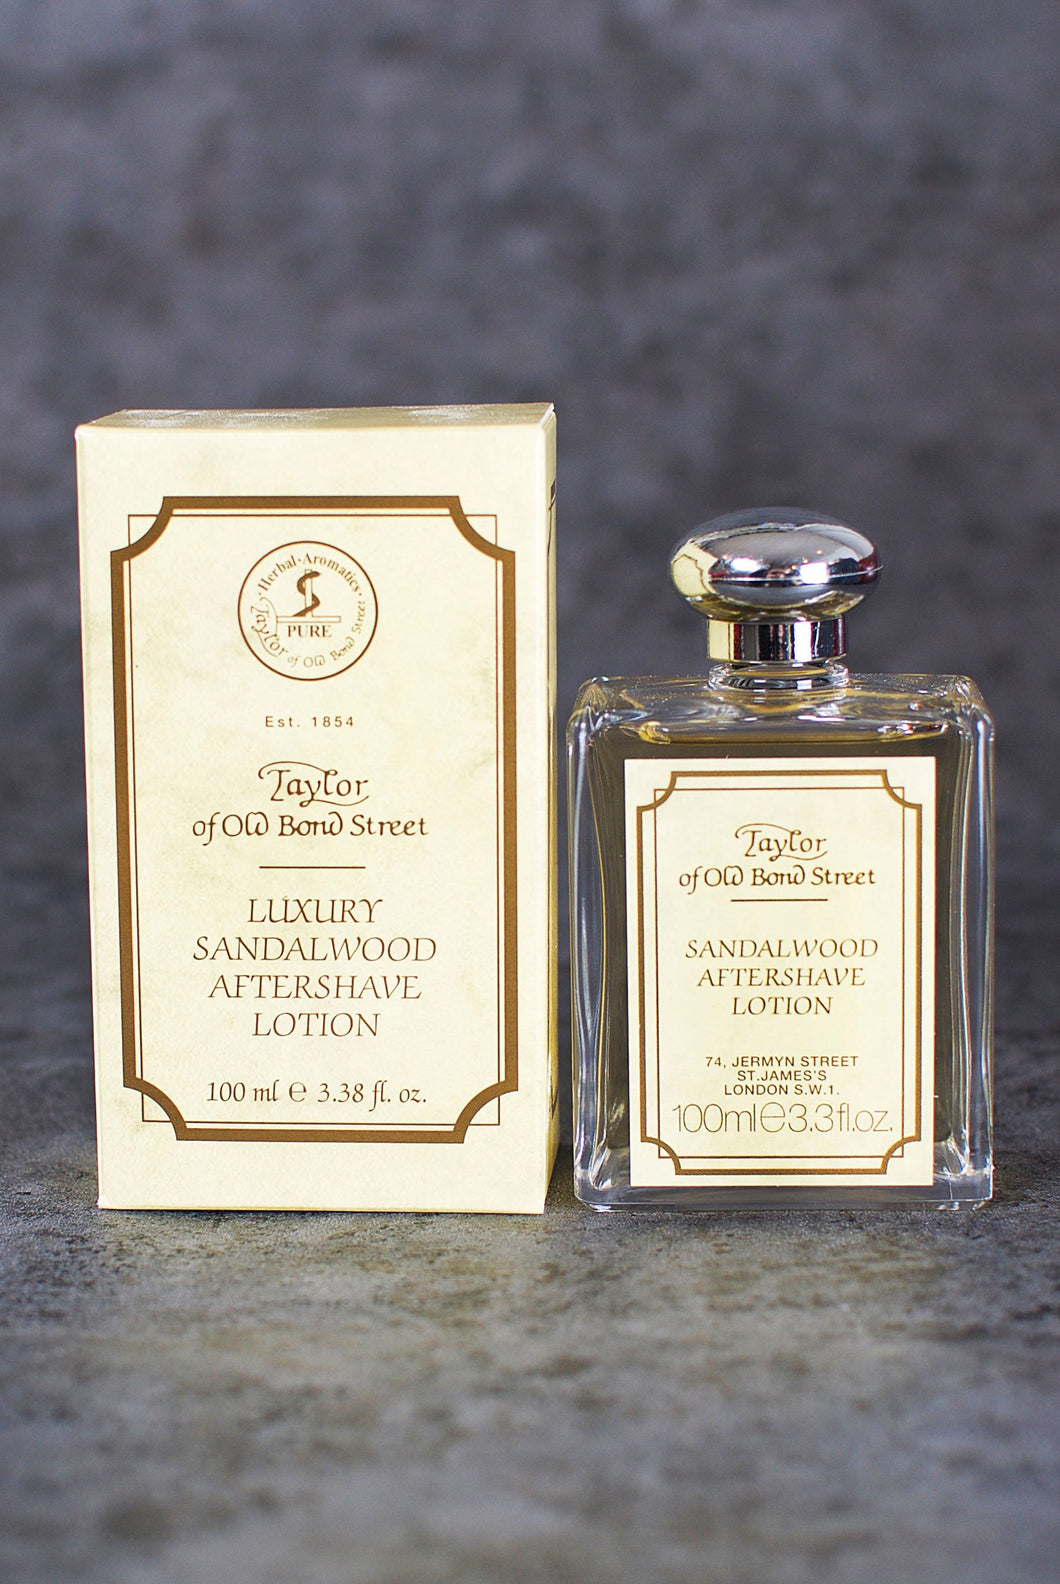 Taylor of Old Bond Street - Aftershave Sandalwood